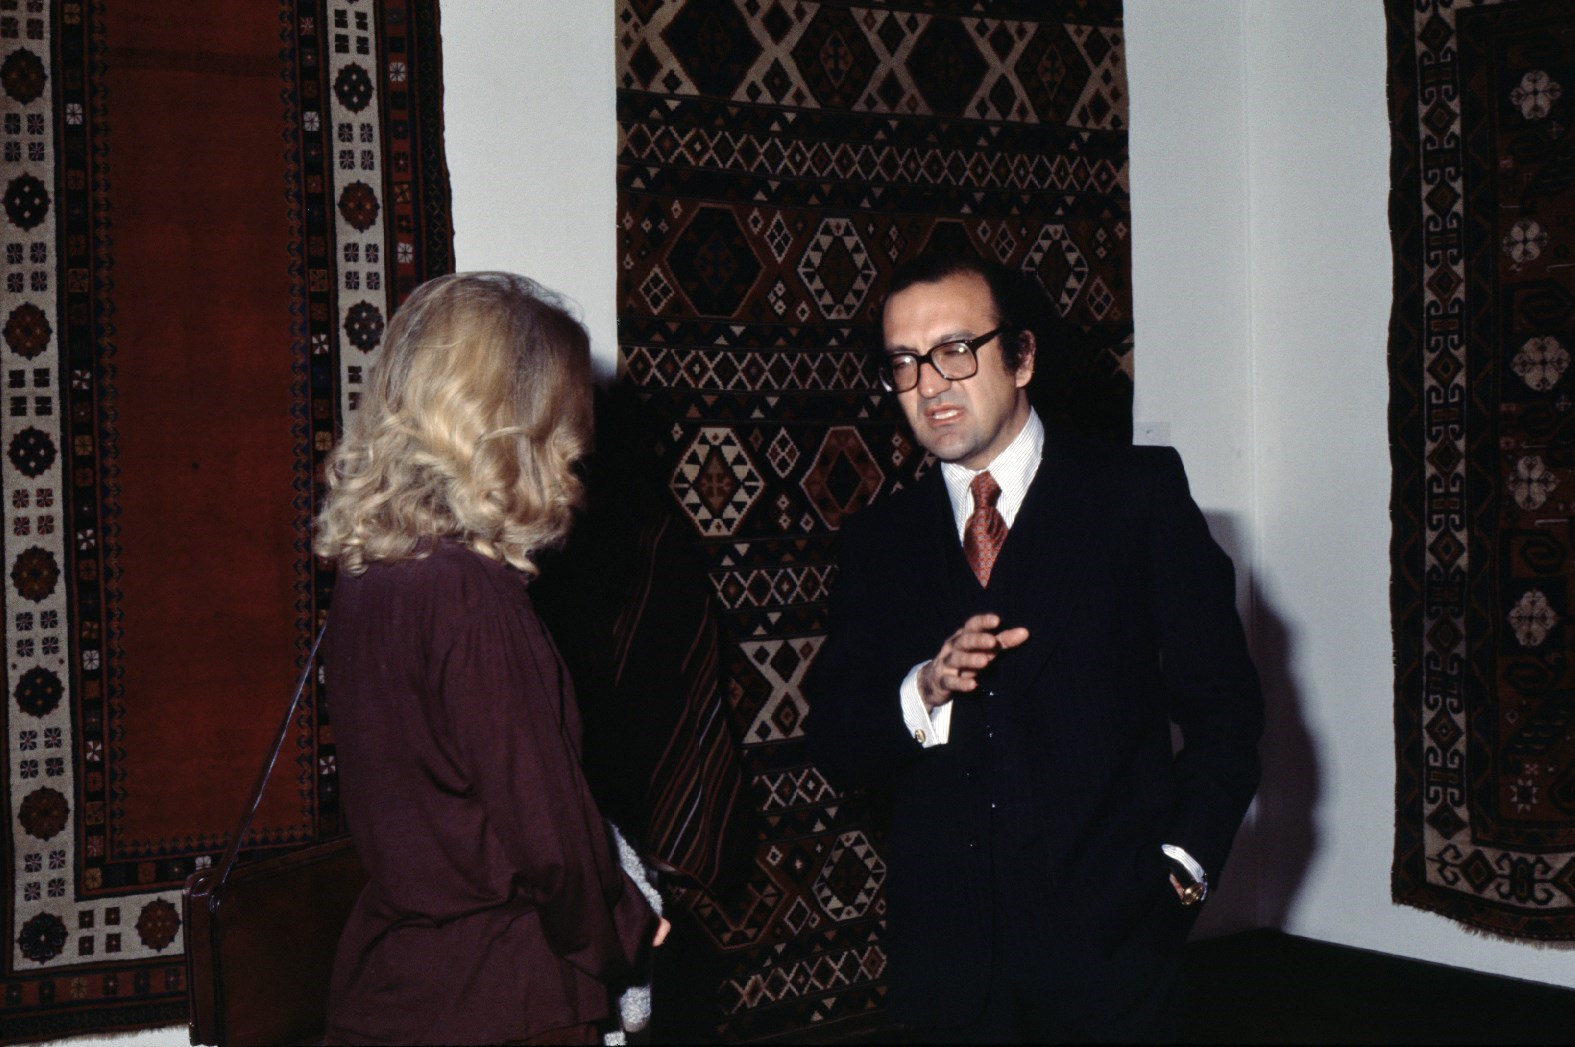 1979 - Reza in Seattle, WA at an exhibition of Islamic carpets